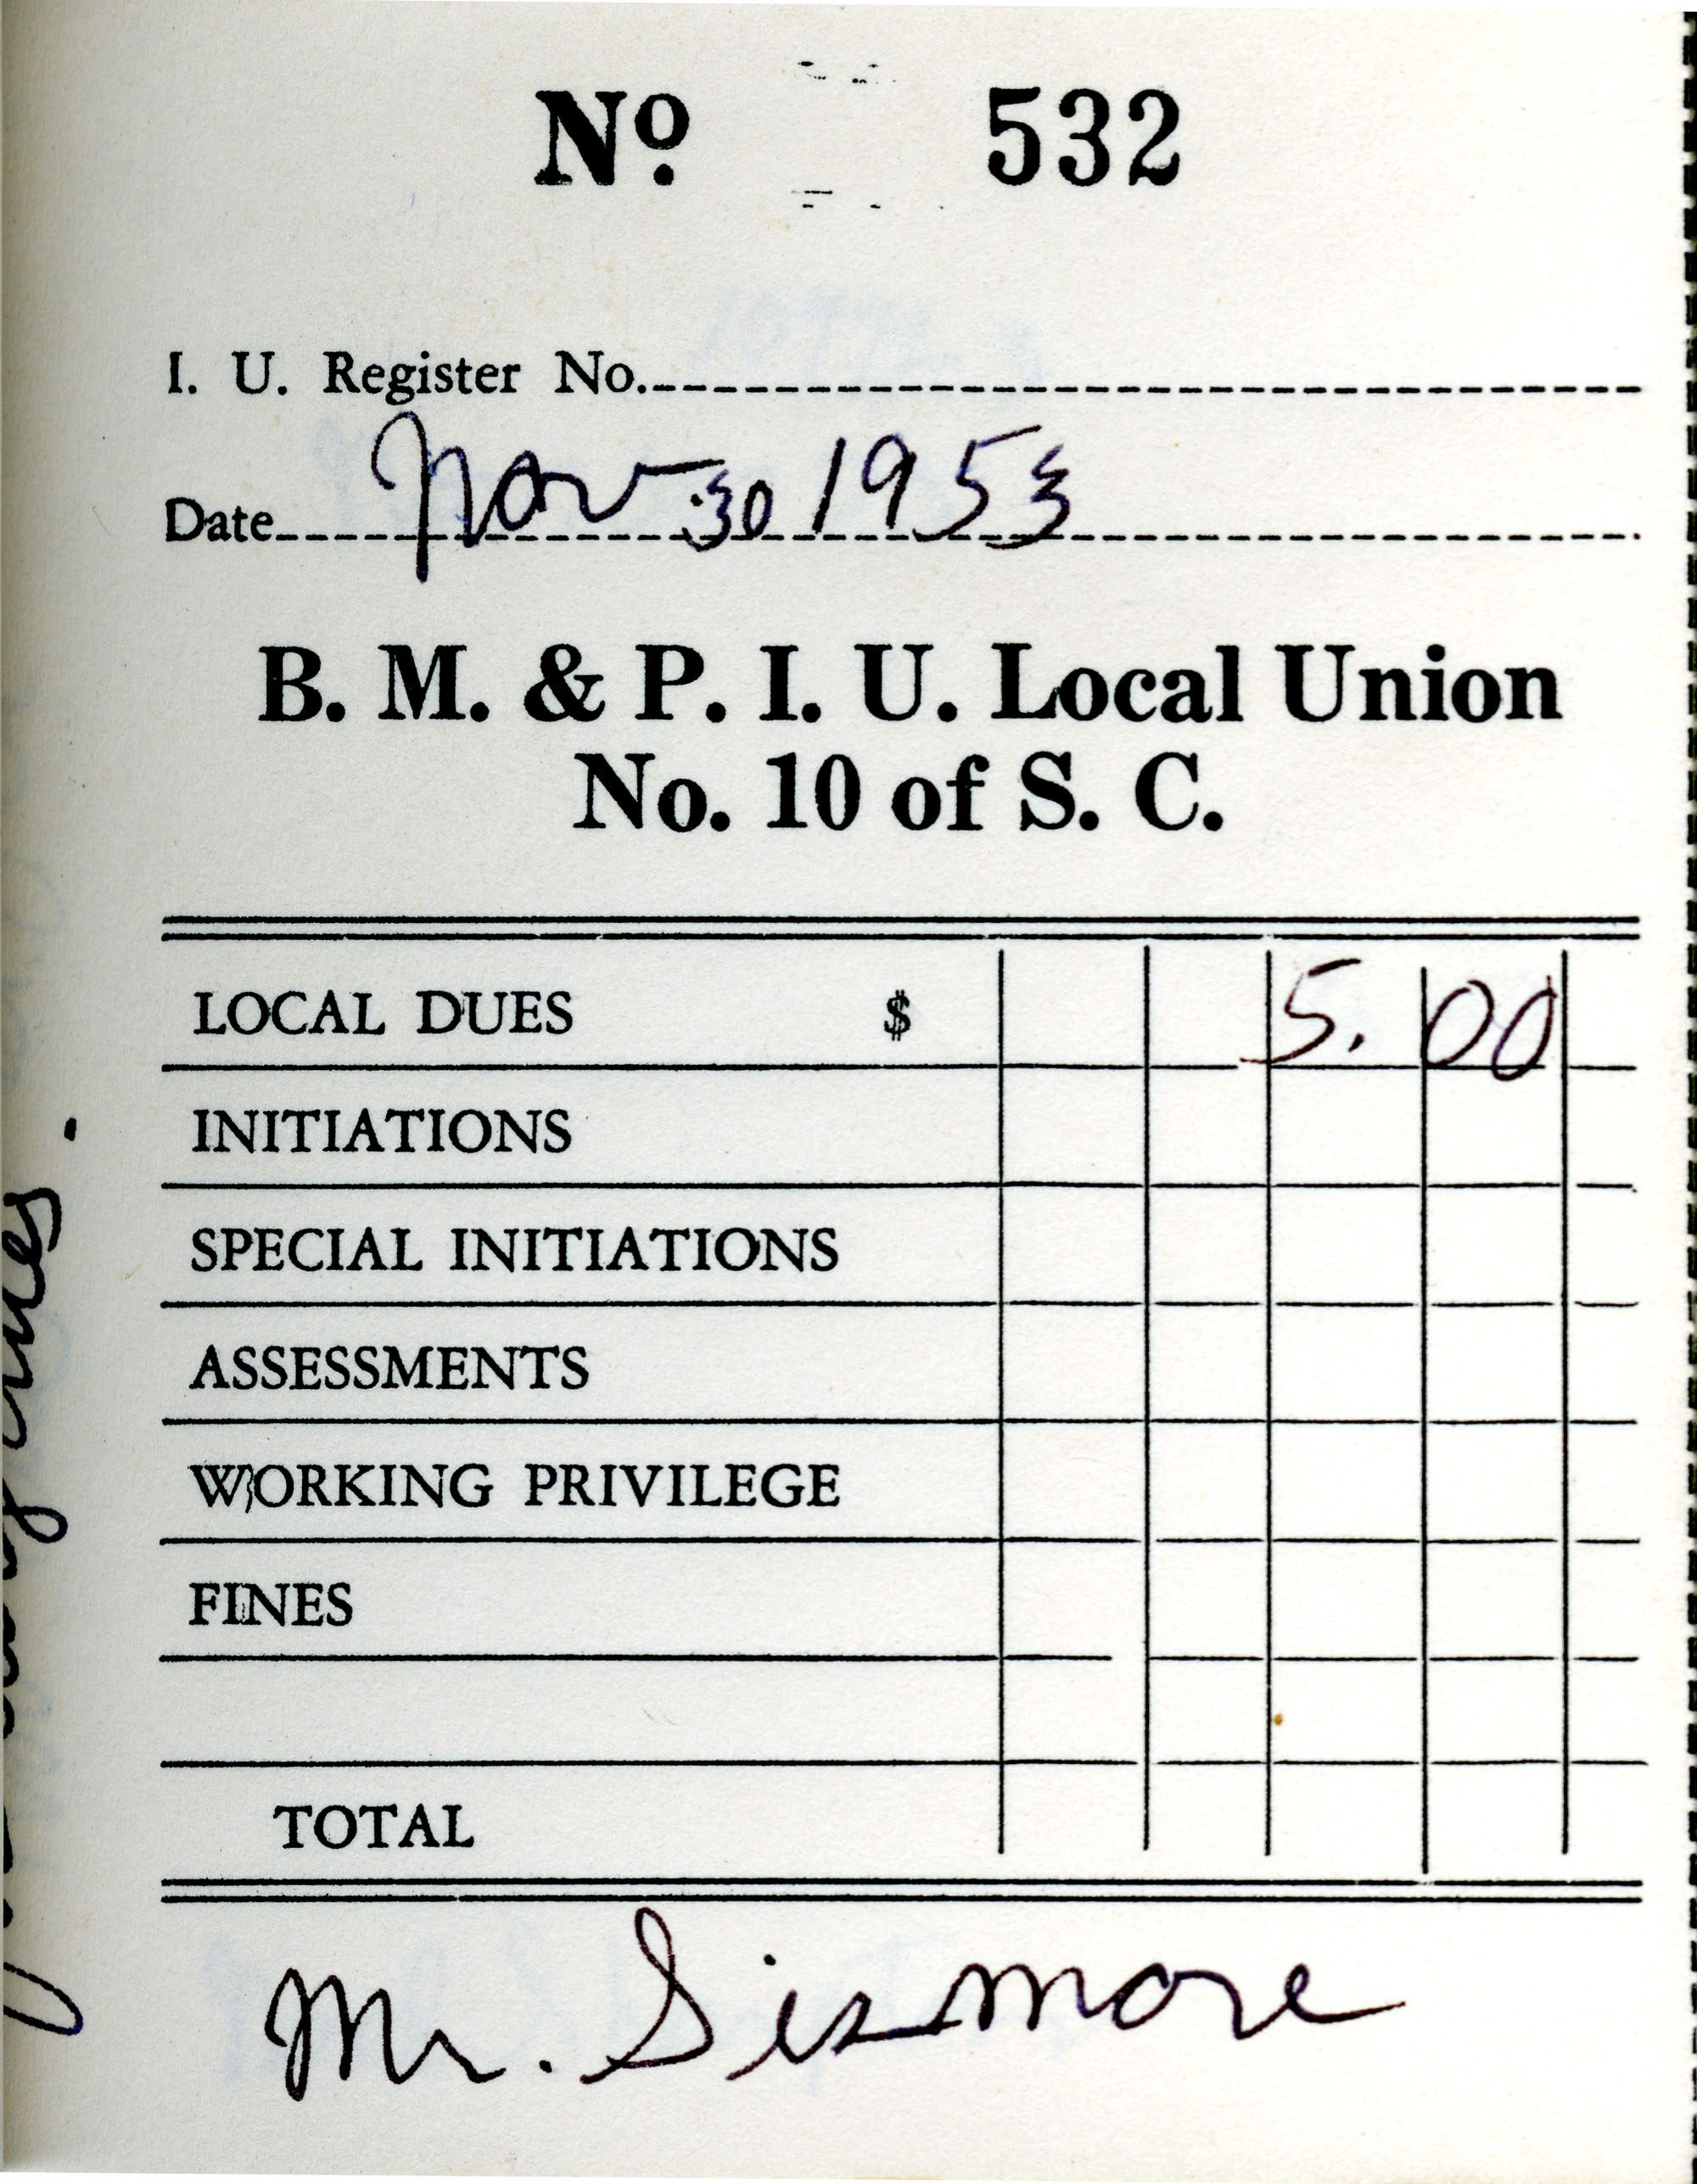 Receipt Book 2, Page 29